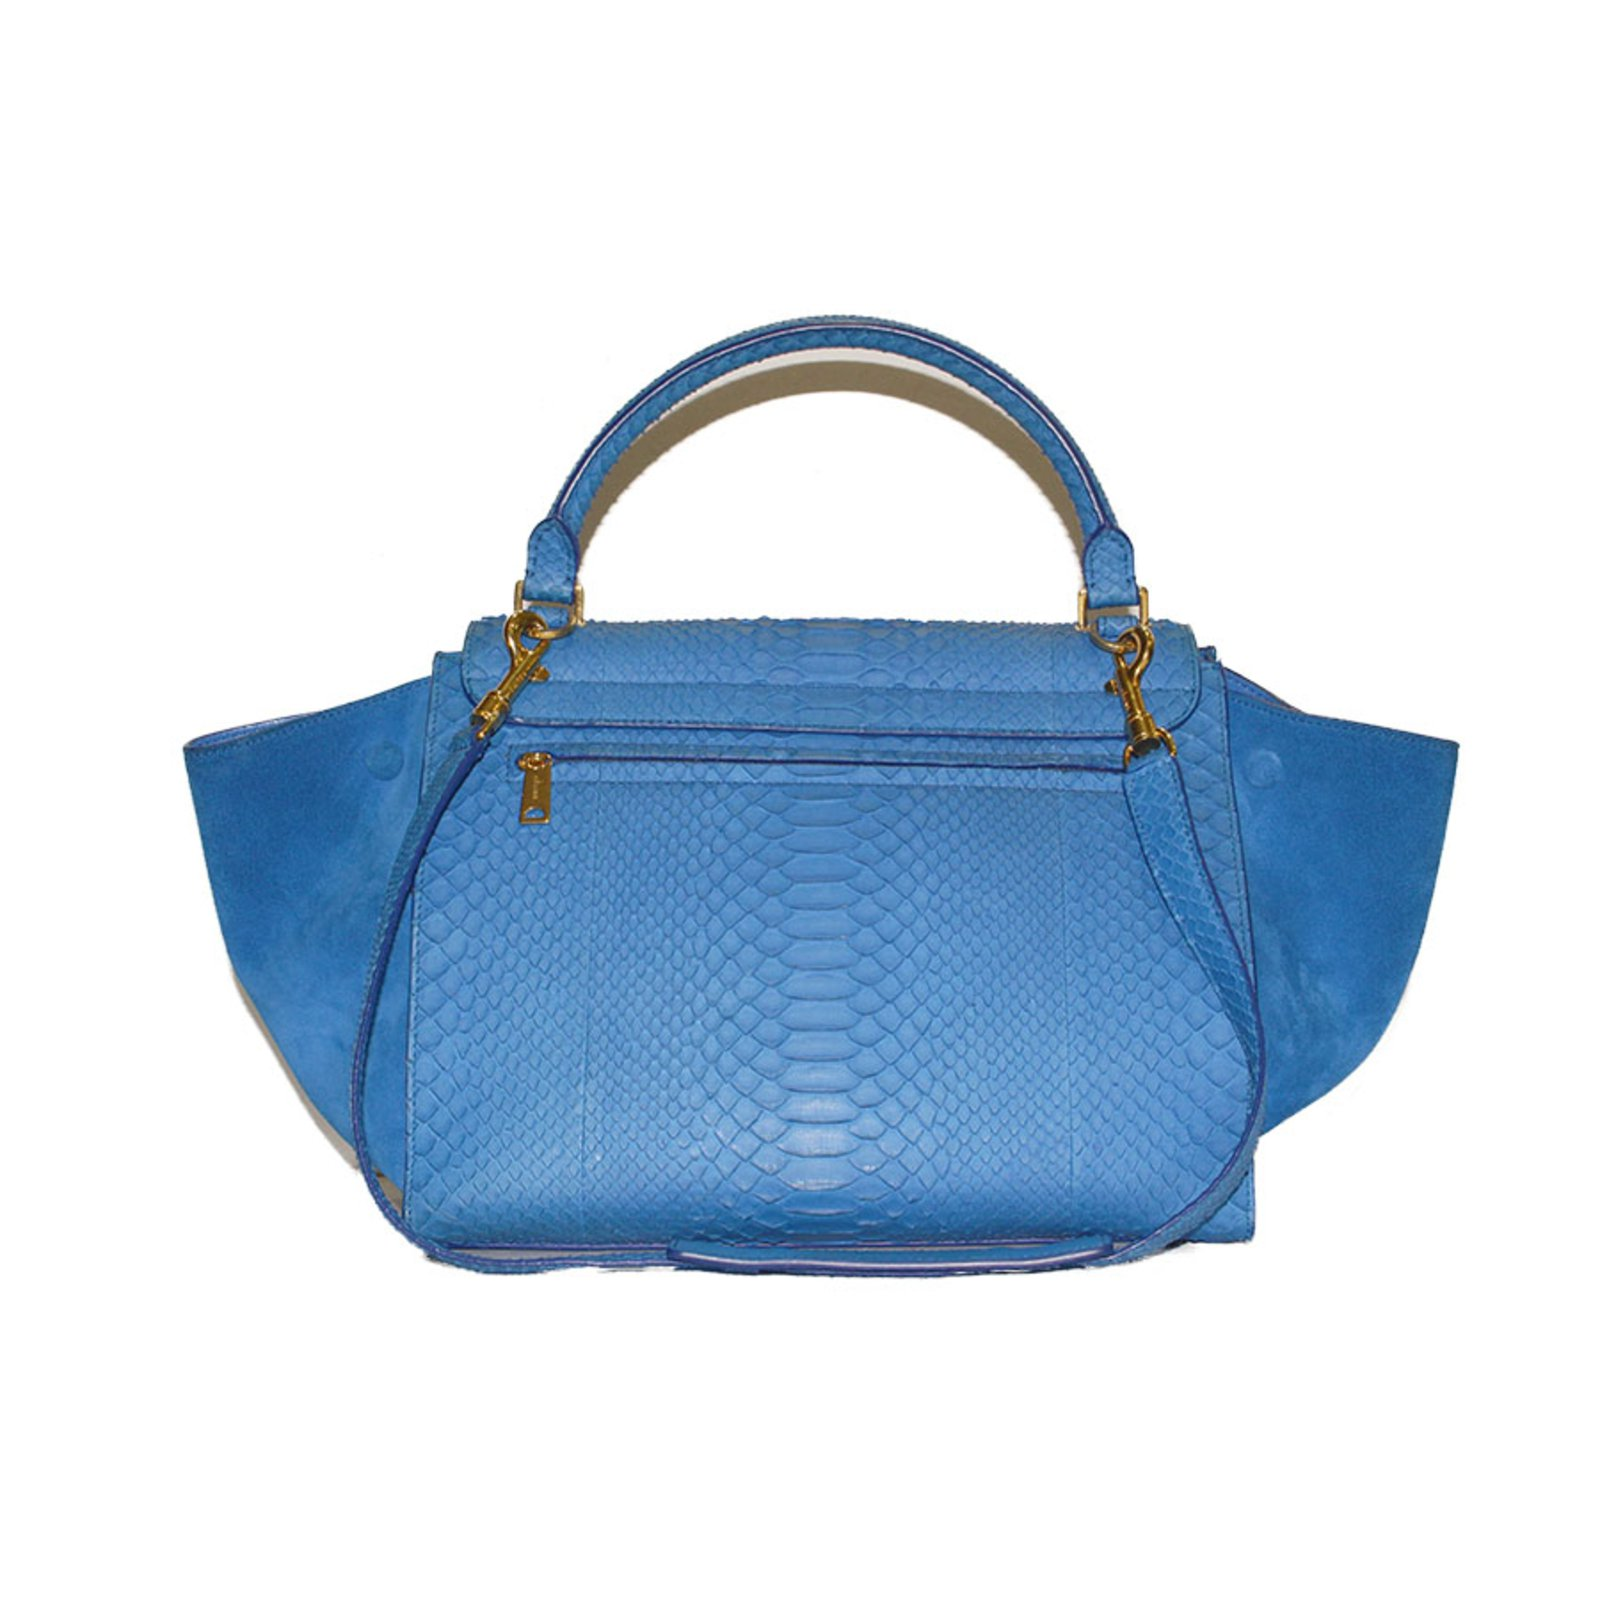 Céline Electric Blue Python Tze Handbag Handbags Exotic Leather Ref 33102 Joli Closet